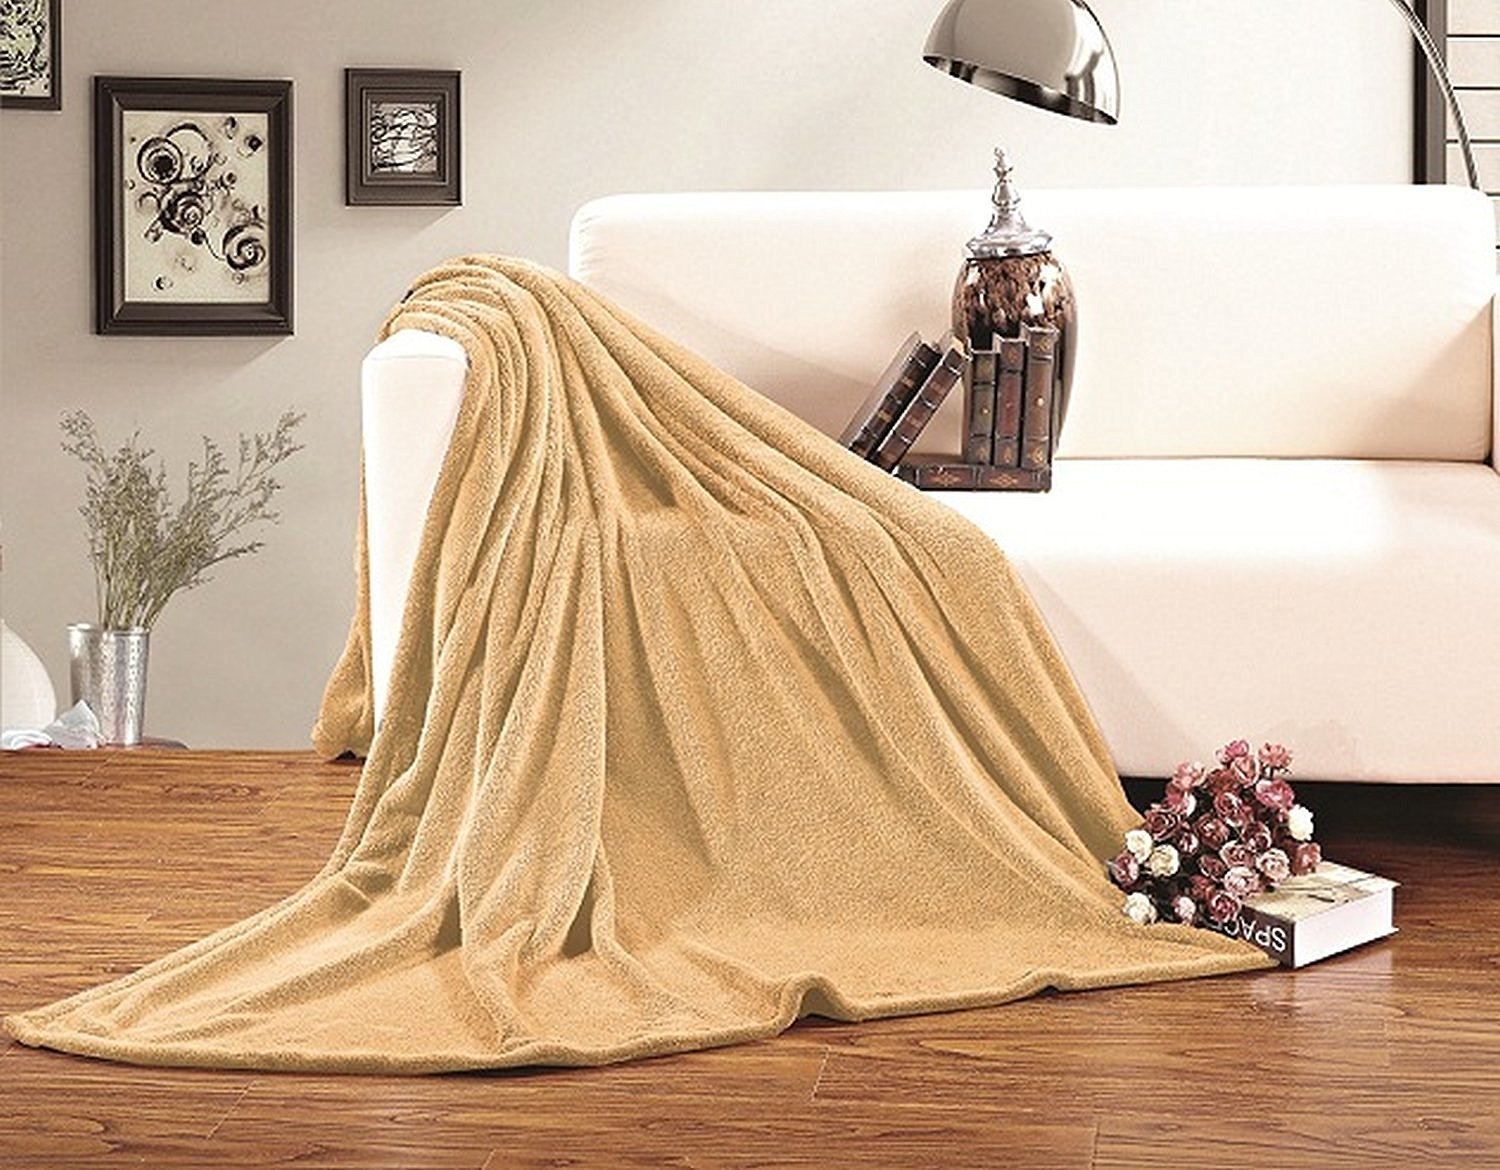 """Elegant Comfort Ultra Super Soft Fleece Plush Luxury Blanket Full/Queen Gold - Made from ultra-soft 100-Percent polyester for the ultimate in warmth and softness. 100% Polyester Full/Queen size measures 90"""" by 90"""" Easy care feature means that it's machine washable and dryable - blankets-throws, bedroom-sheets-comforters, bedroom - 816fWYGWZ7L -"""